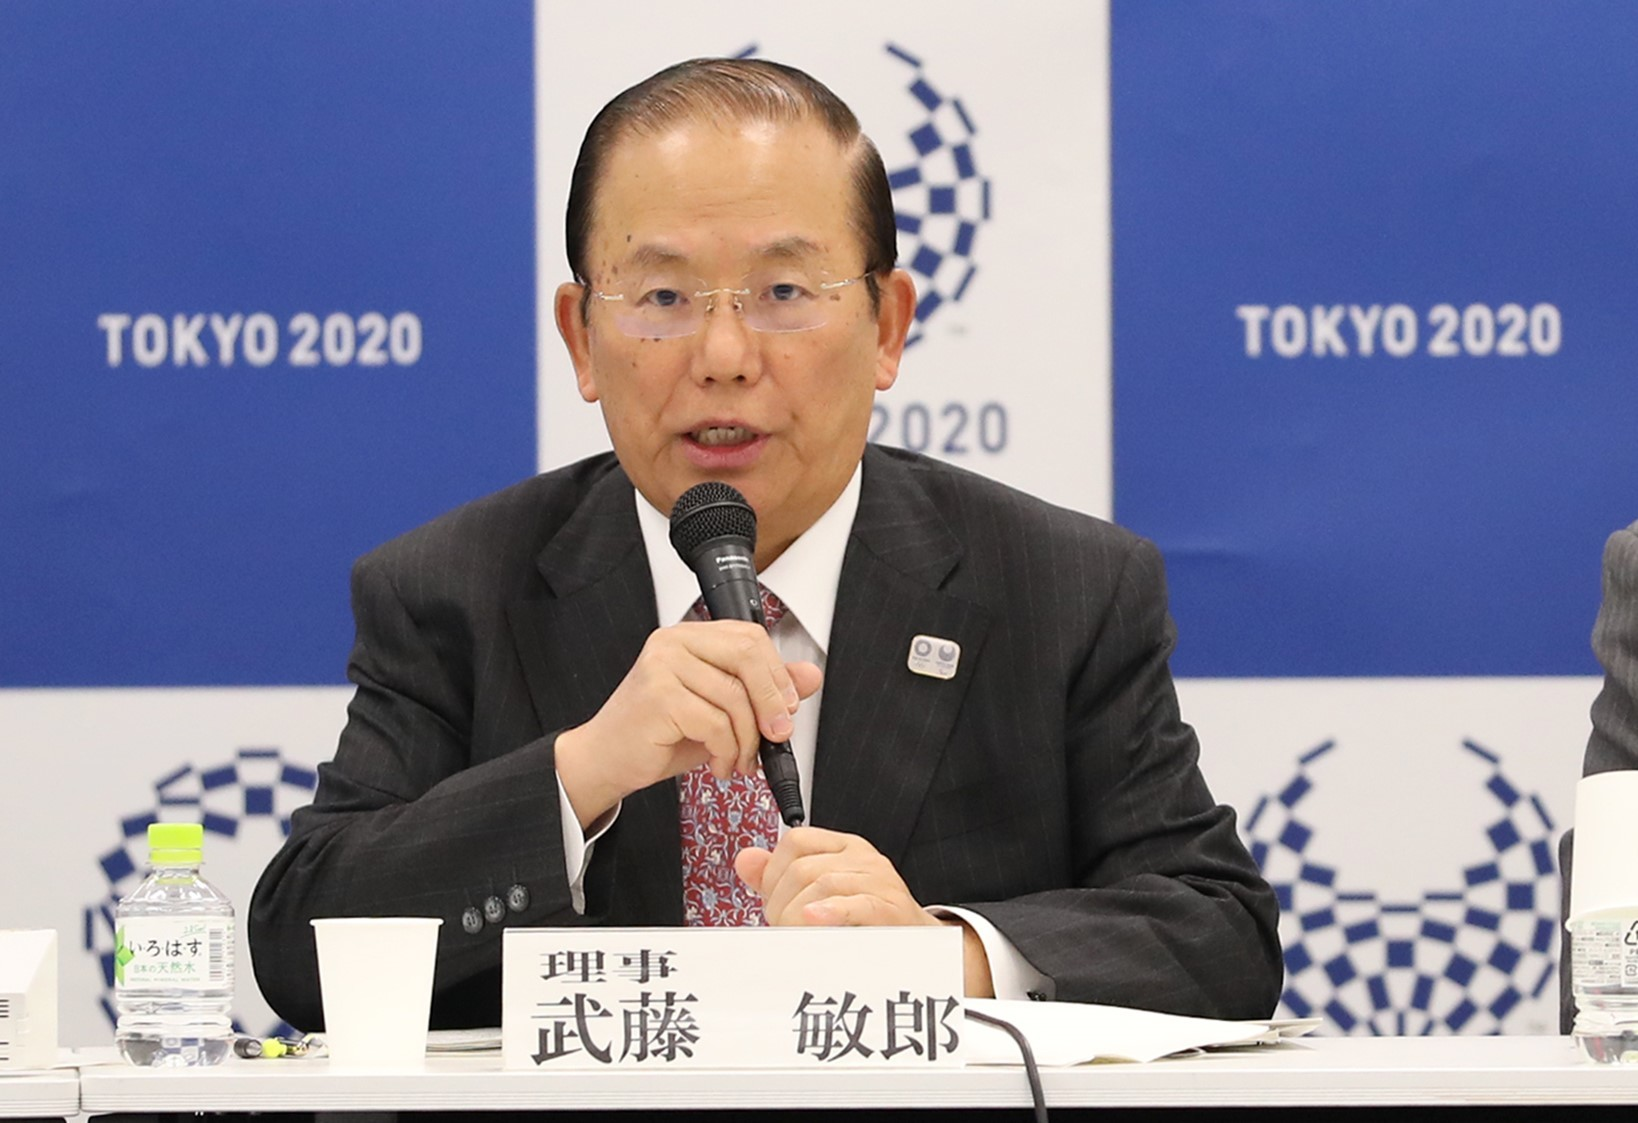 Tokyo 2020 chief executive Toshirō Mutō has fuelled hope of foreign fans being allowed to attend the postponed Olympic Games by revealing a plan for spectators would be drawn up by next spring